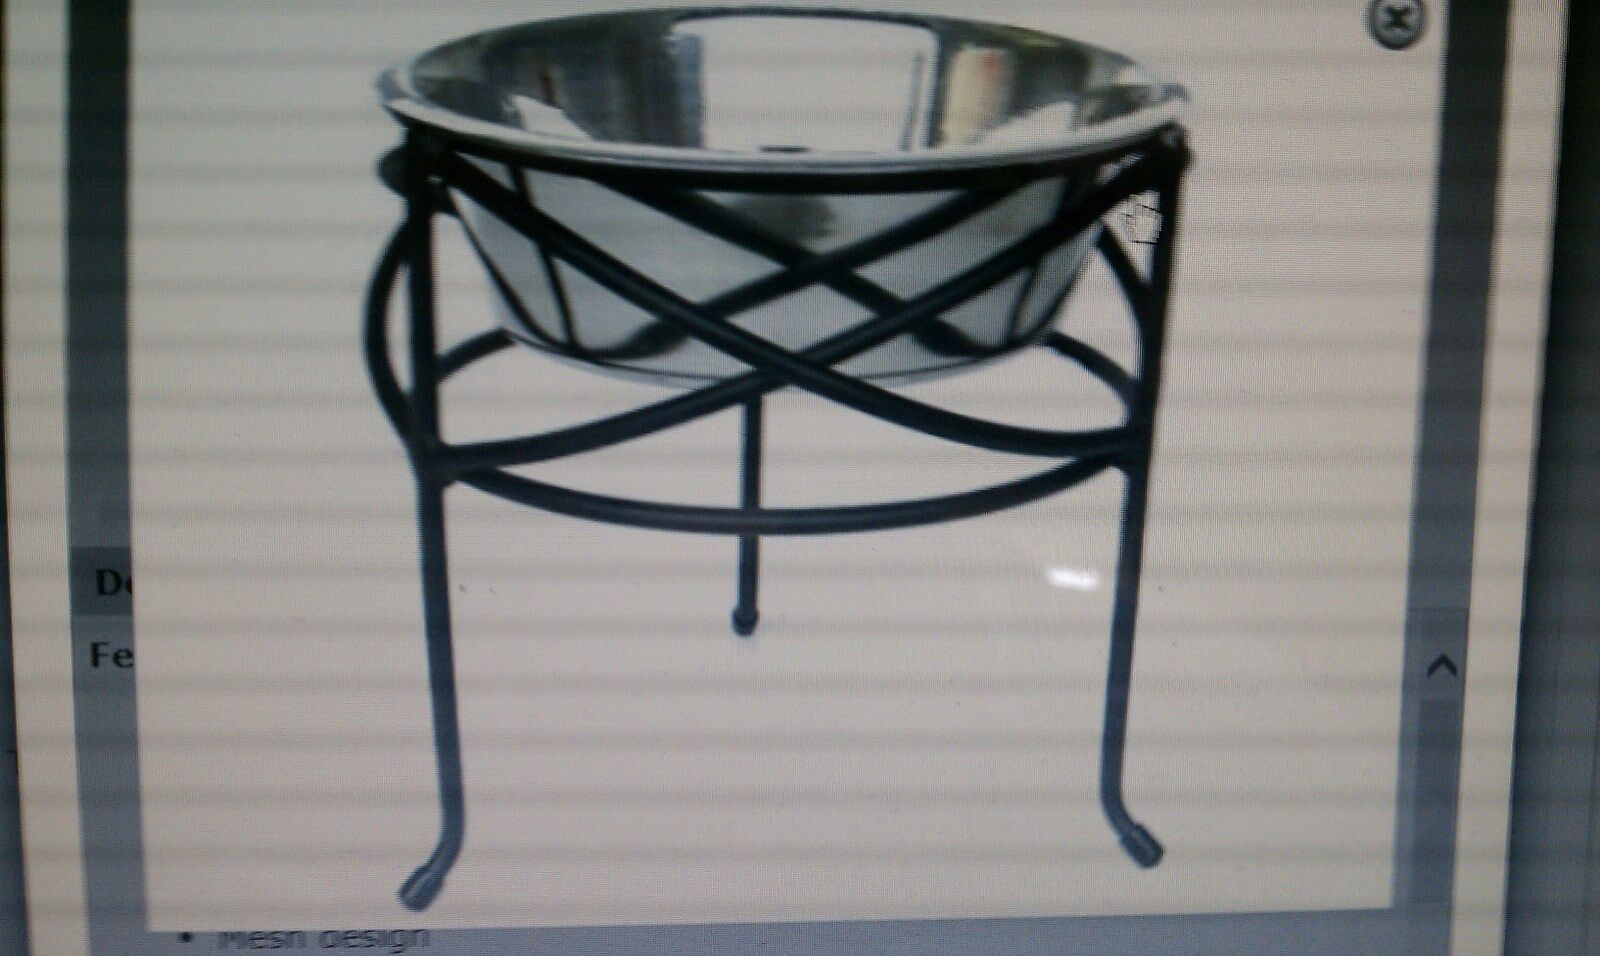 A  MESH  ELEVATED (off the floor) DOG BOWL FEEDER - LETS YOUR PET EAT IN STYLE